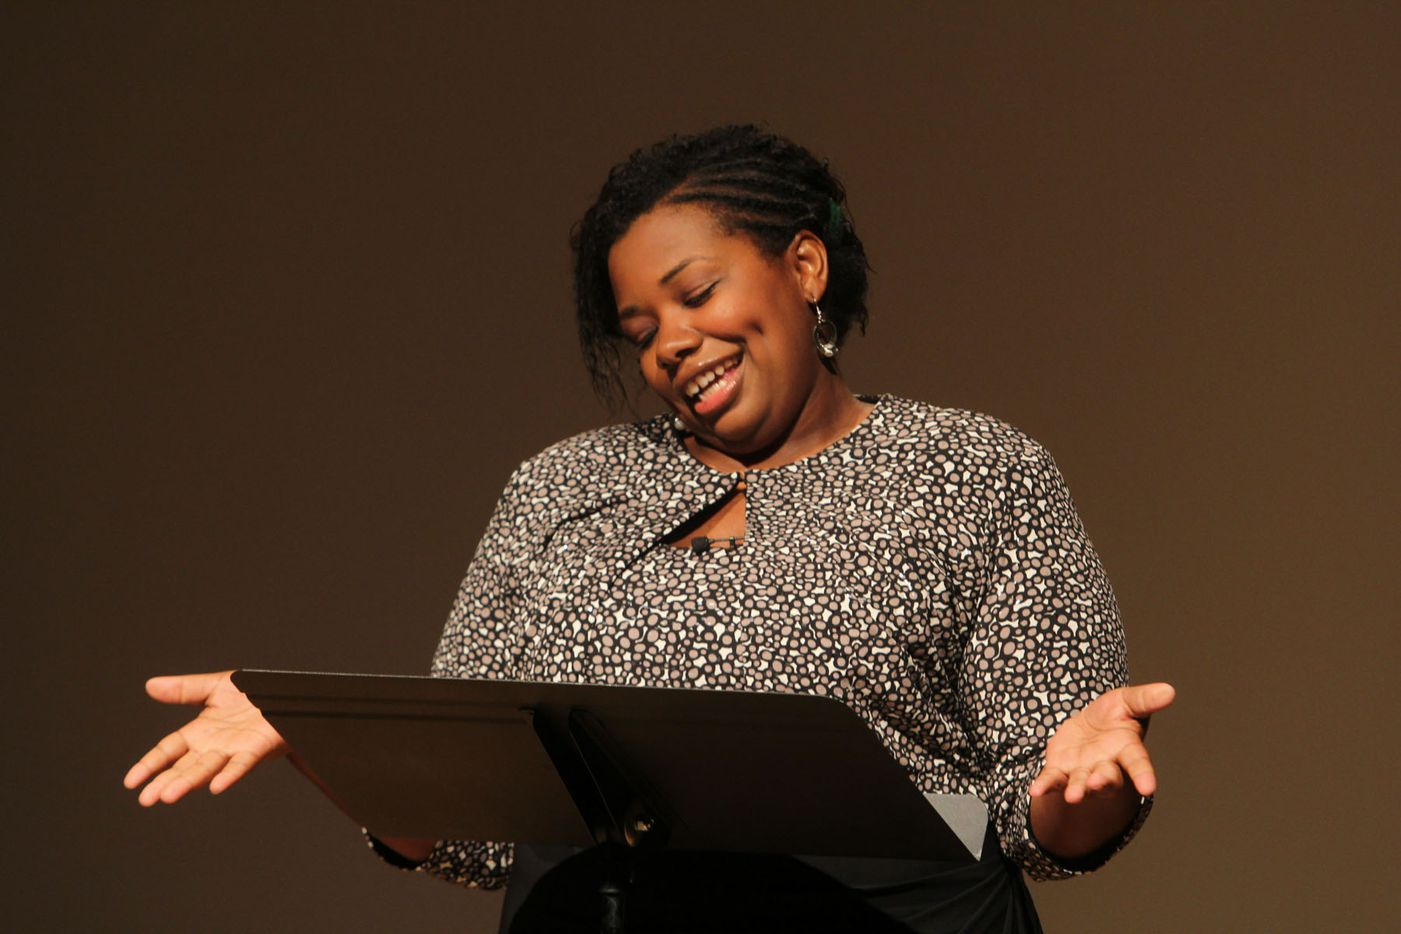 """Julia Cotton performed her story """"Outside the Box""""€ at Oral Fixation's """"The Best of Season Four"""" at the Dallas Museum of Art on August 15, 2015"""